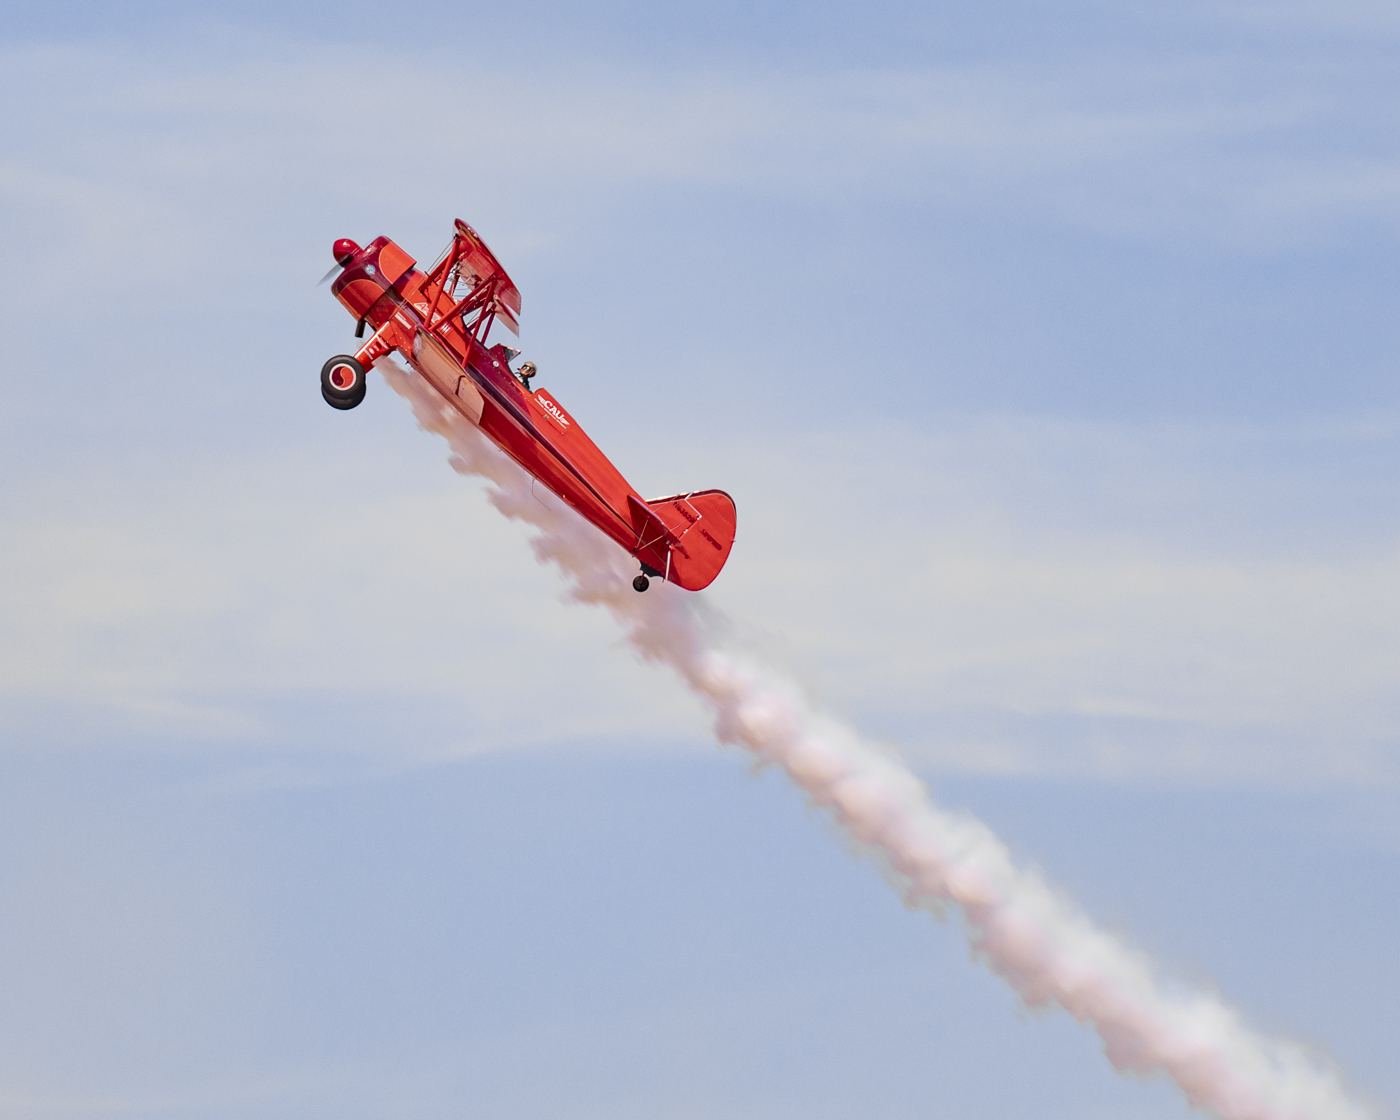 PRINT-33-HM-Assigned_Terry_Miranda_2_The_Red_Plane